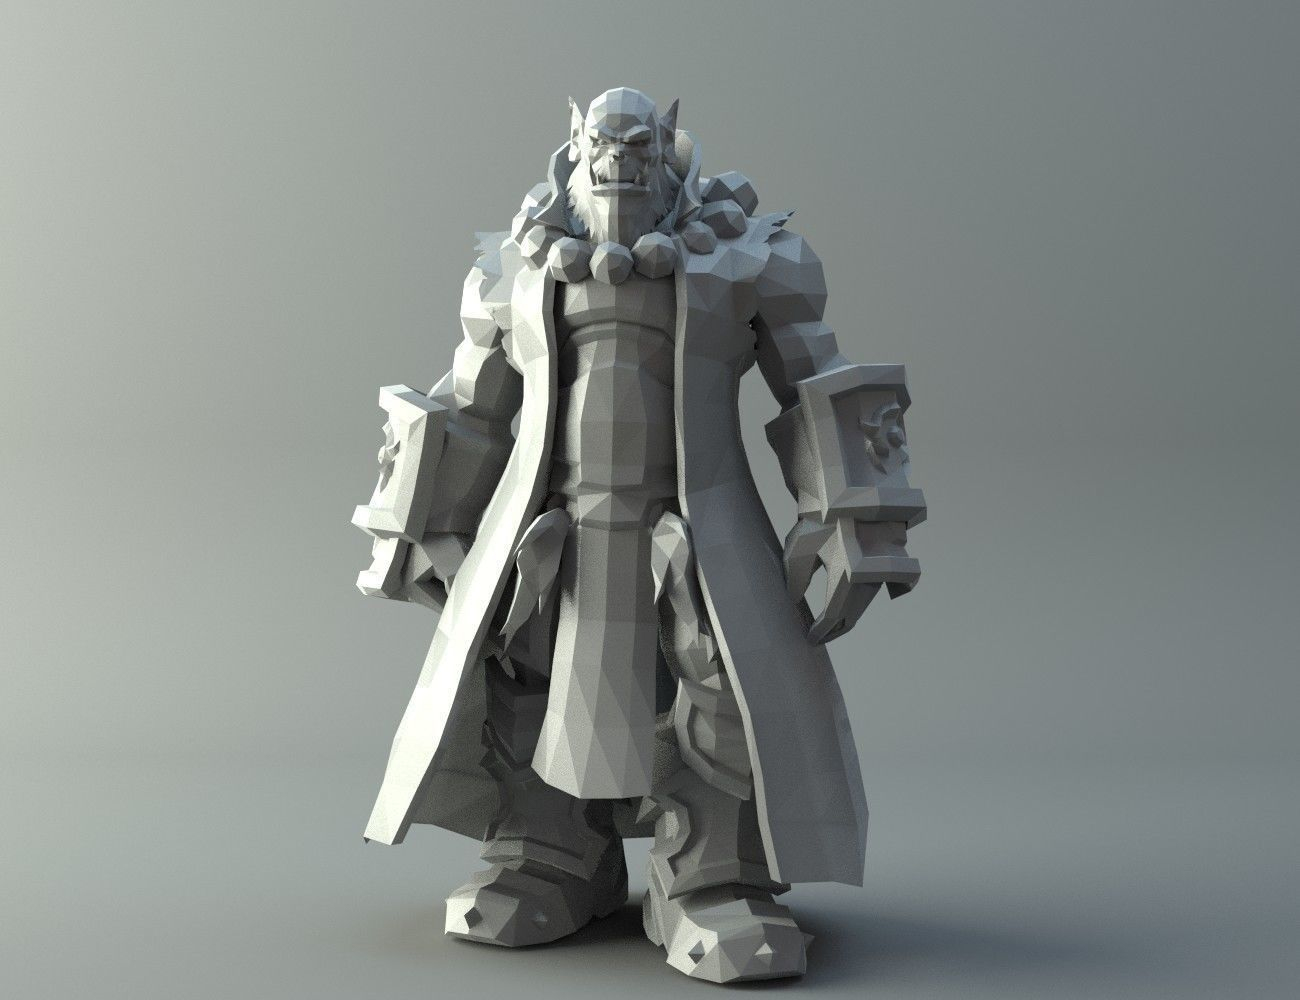 3D Print Model Thrall - Word Of Warcraft | Cgtrader - Free 3D Printable Models